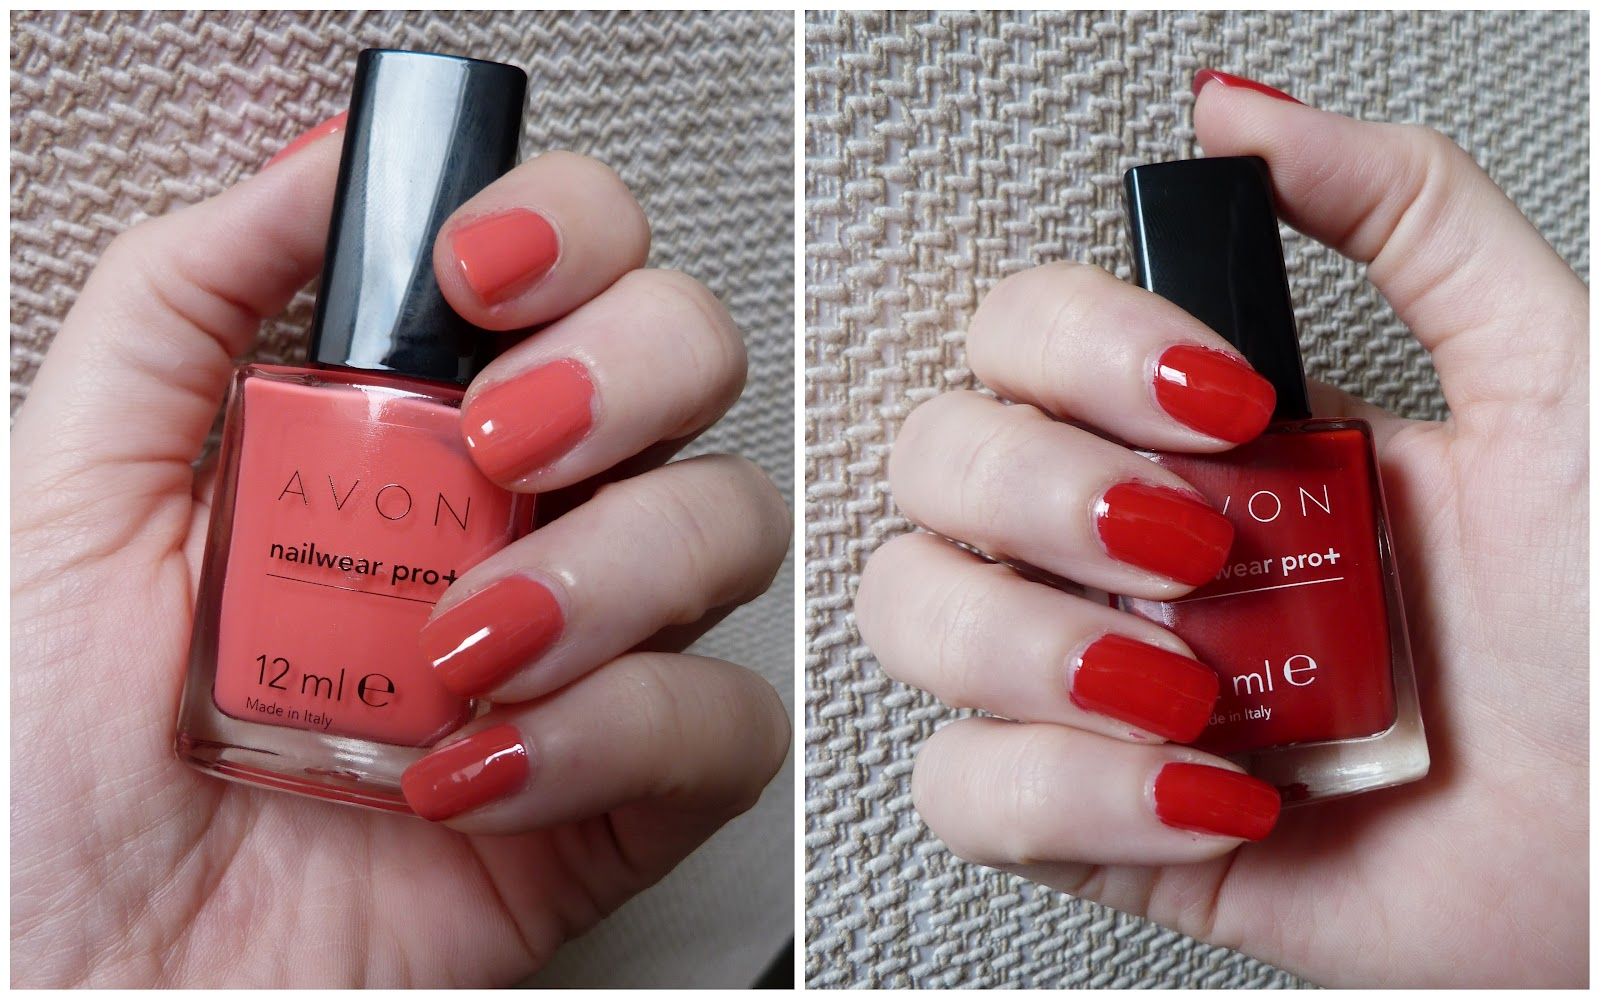 New from Avon Nailwear Pro+ Nail Enamel - swatch central! | Lovely ...